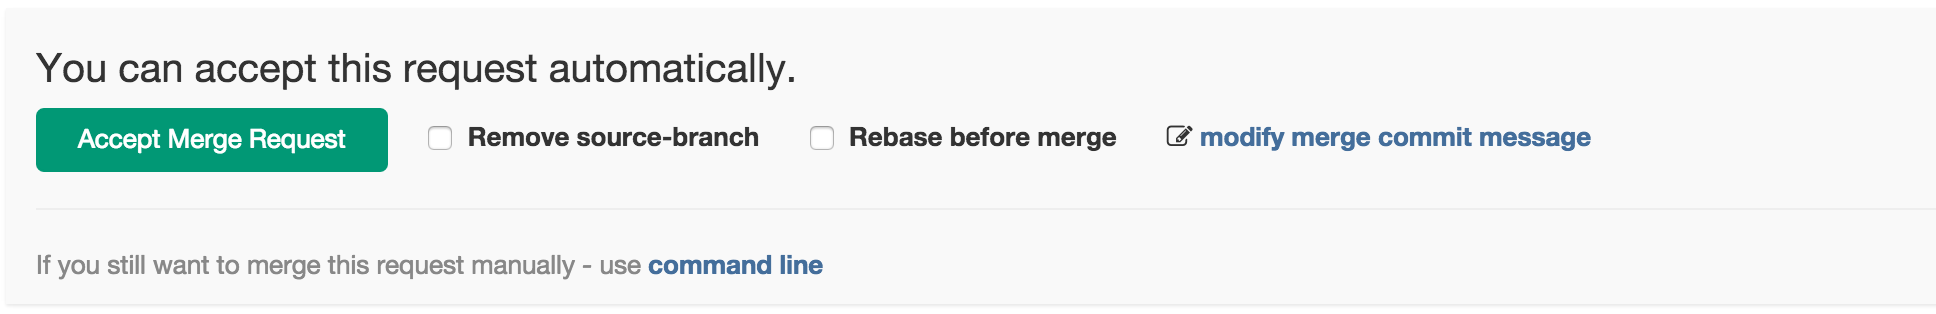 Merge request widget